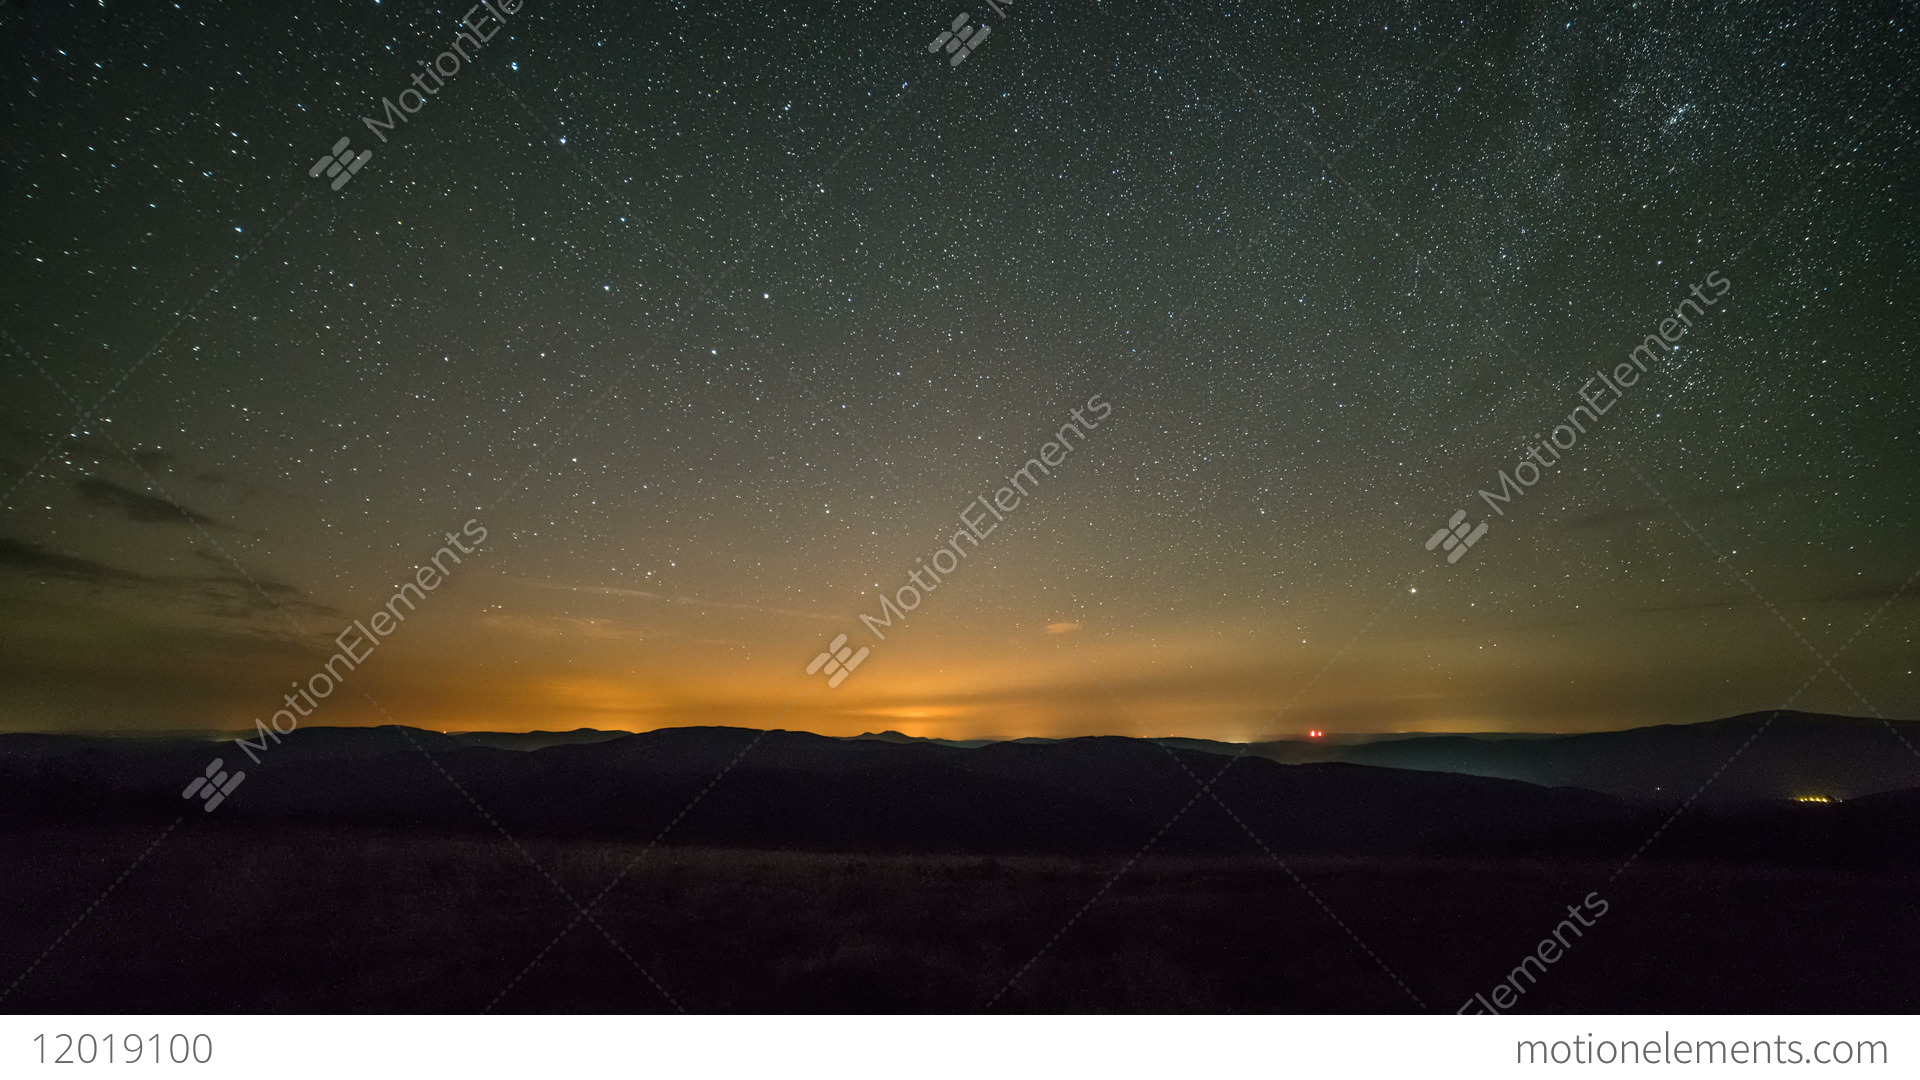 starry night sky with stars and clouds time lapse background stock